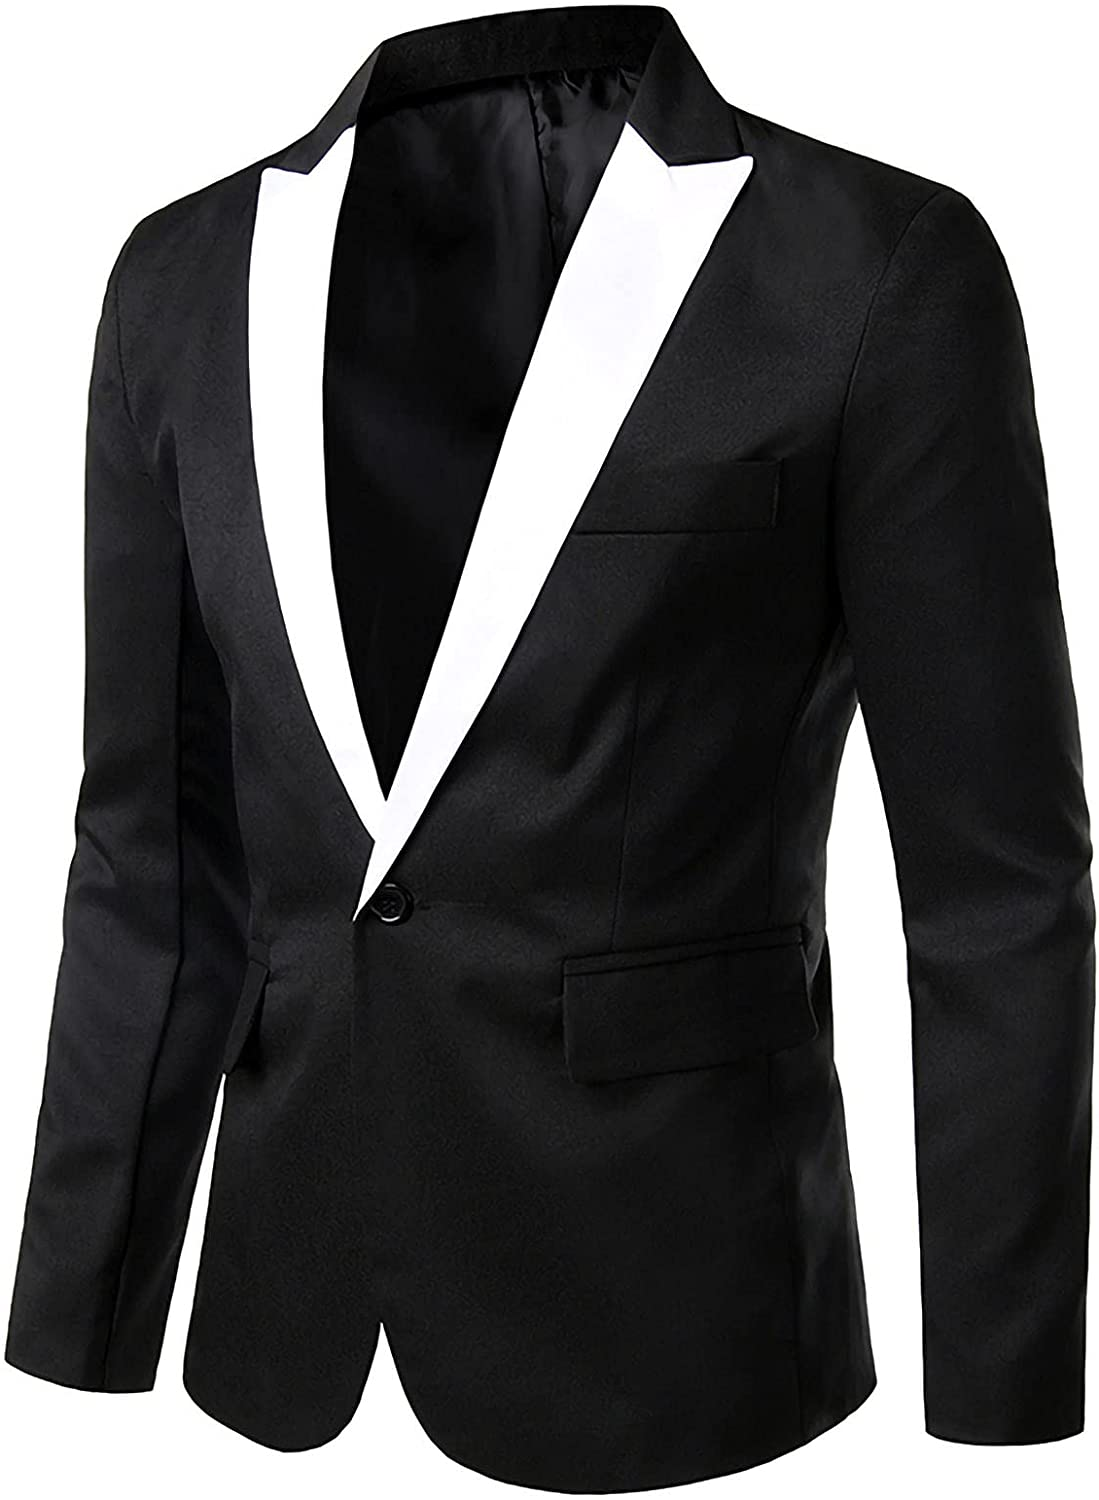 Premium Suit for Men's Fashion Business Blazer England Style Slim Casual Single Breasted Youth Formal Coat Jacket